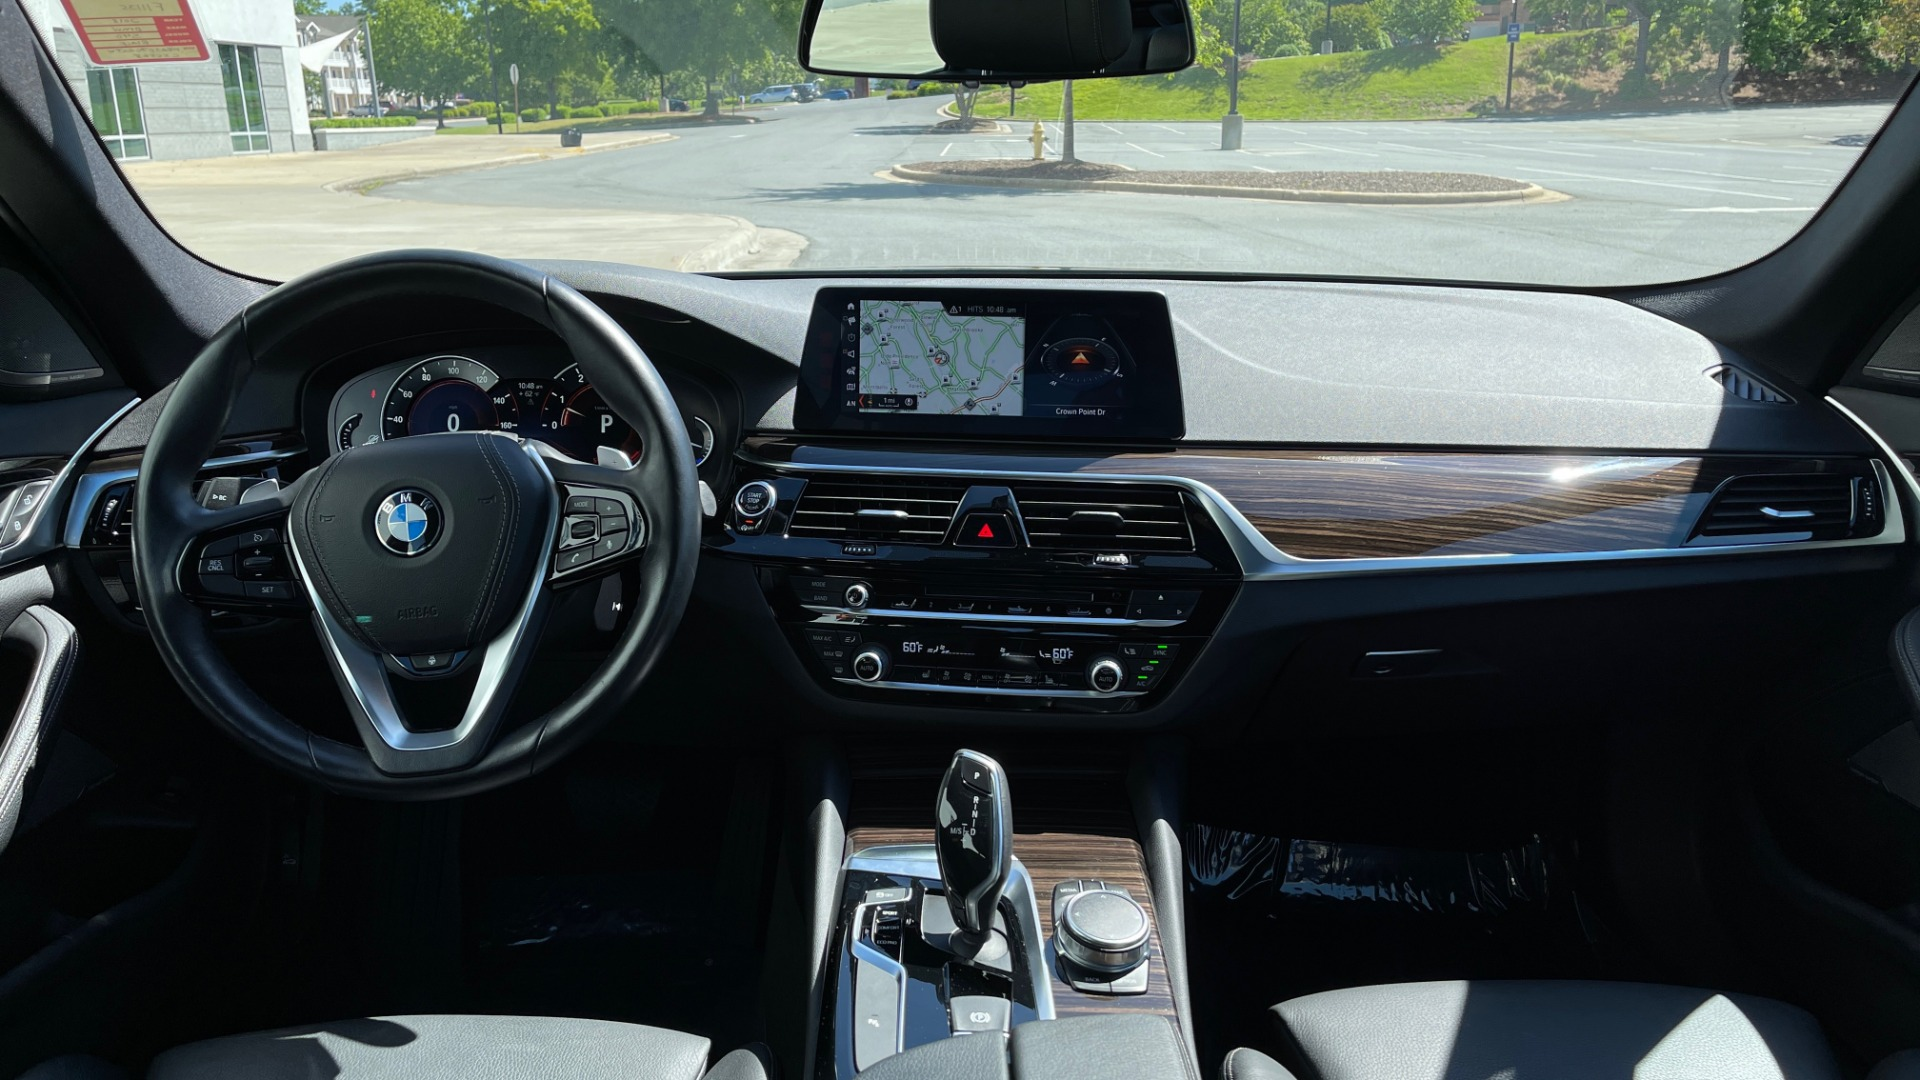 Used 2018 BMW 5 SERIES 540I XDRIVE PREMIUM / NAV / PARK ASST / WIRELESS CHARGING H/K SND for sale $38,395 at Formula Imports in Charlotte NC 28227 74